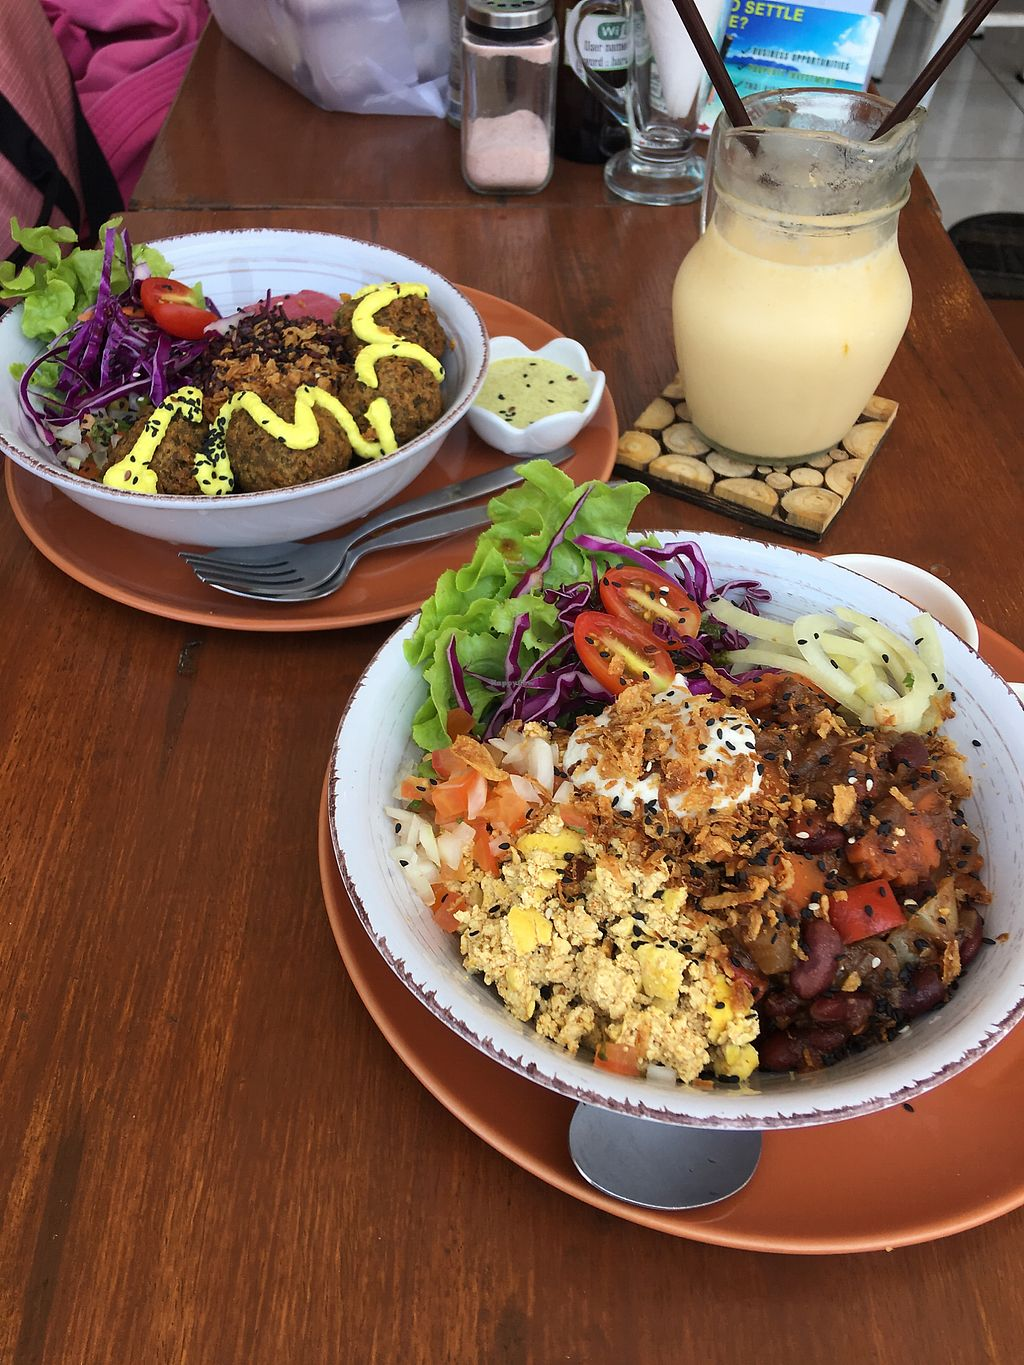 """Photo of Pure Vegan Heaven  by <a href=""""/members/profile/BenjaminJoon"""">BenjaminJoon</a> <br/>Bowls <br/> April 15, 2018  - <a href='/contact/abuse/image/72425/386141'>Report</a>"""